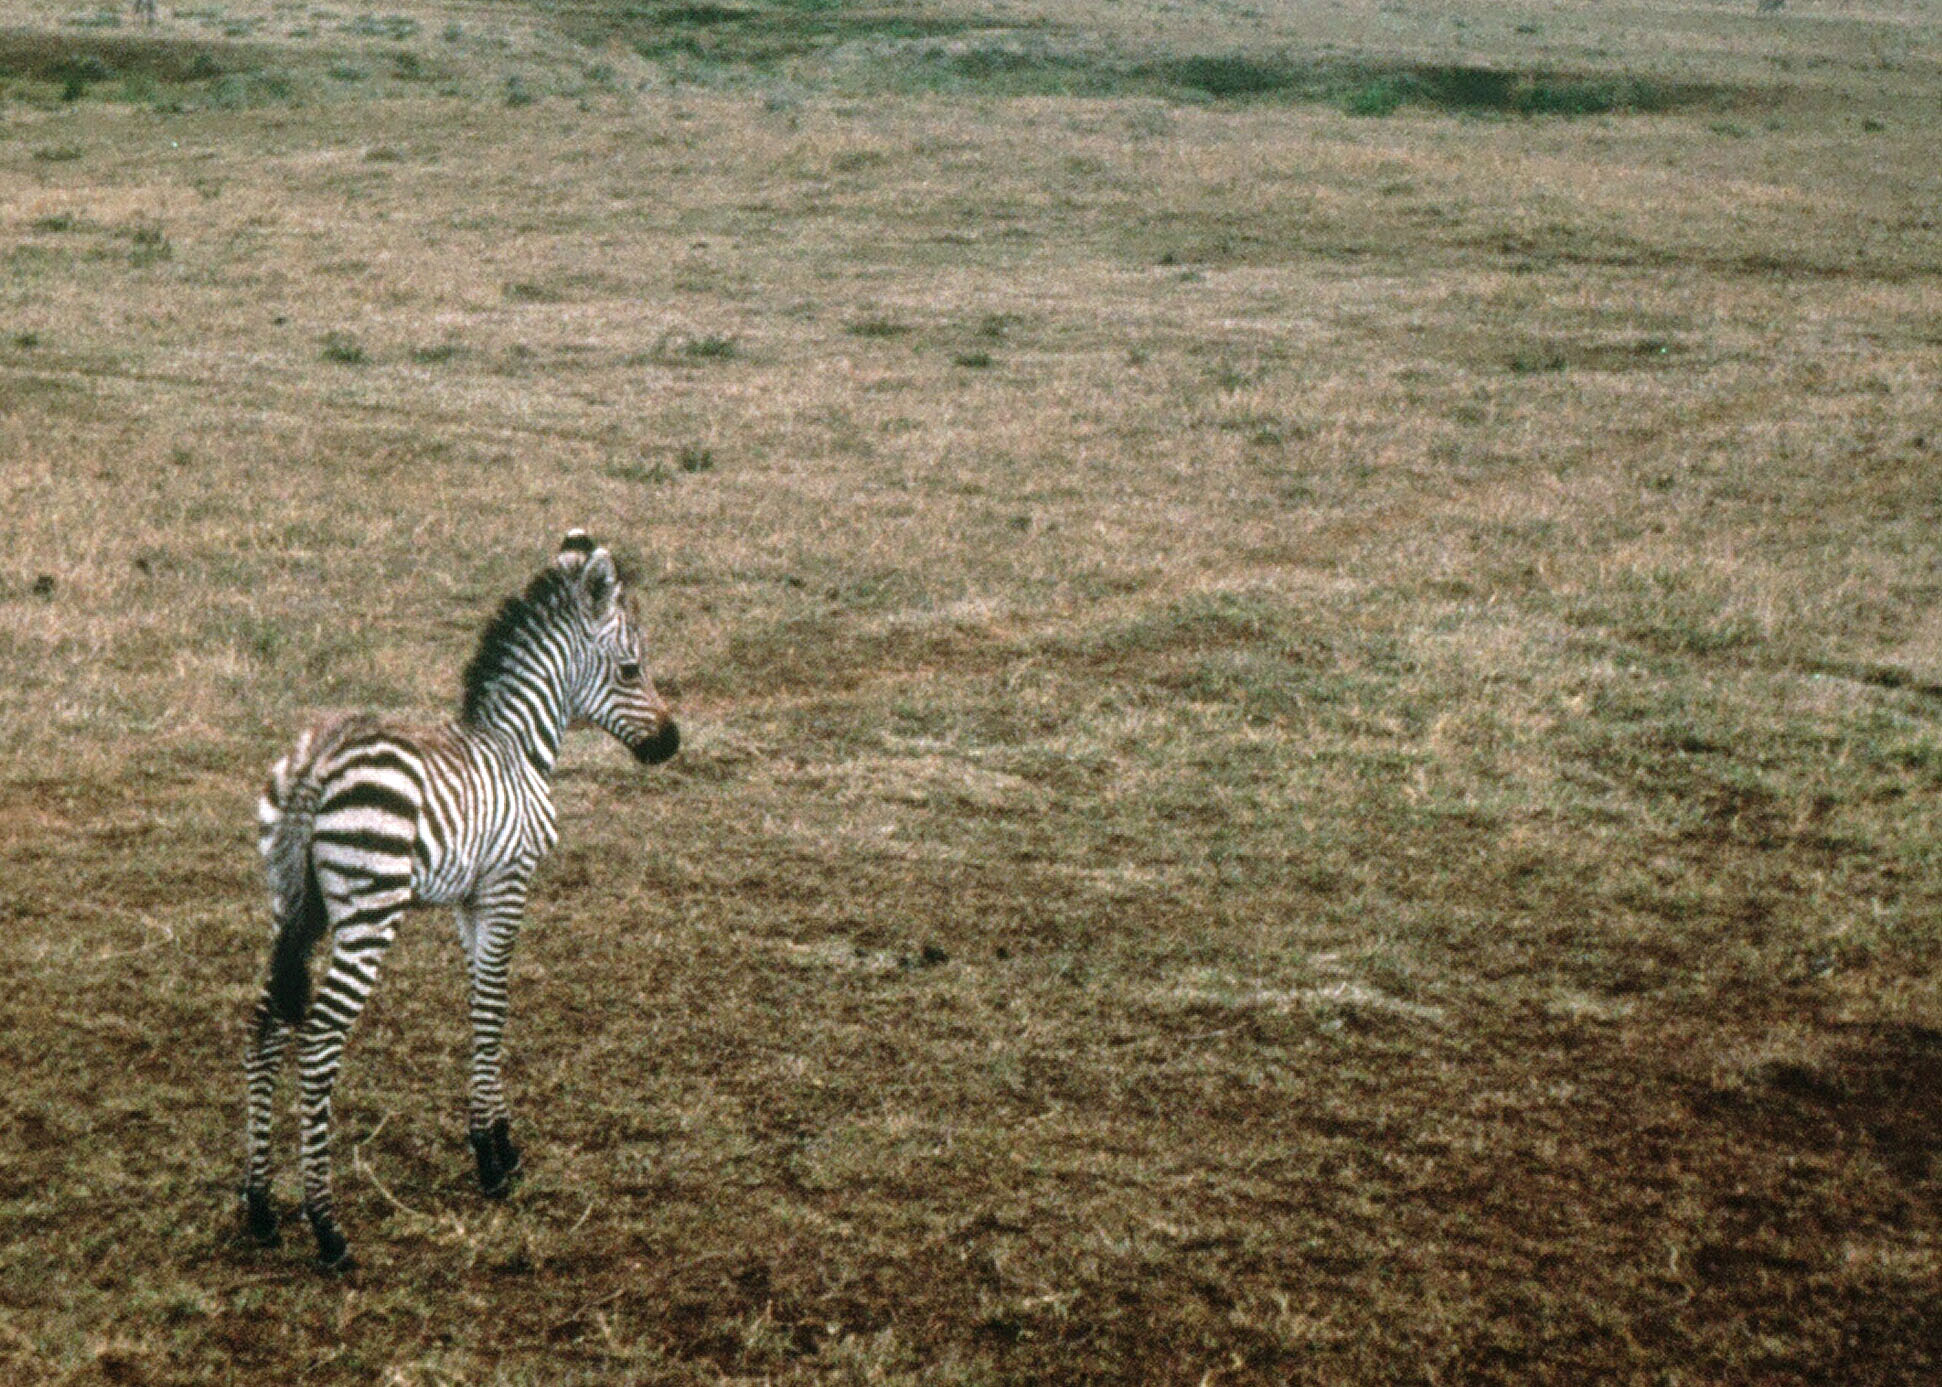 On the opposite end of the food chain from the lion, was this cute baby zebra I photographed in Ngorongoro Crater. Mom was standing nearby.